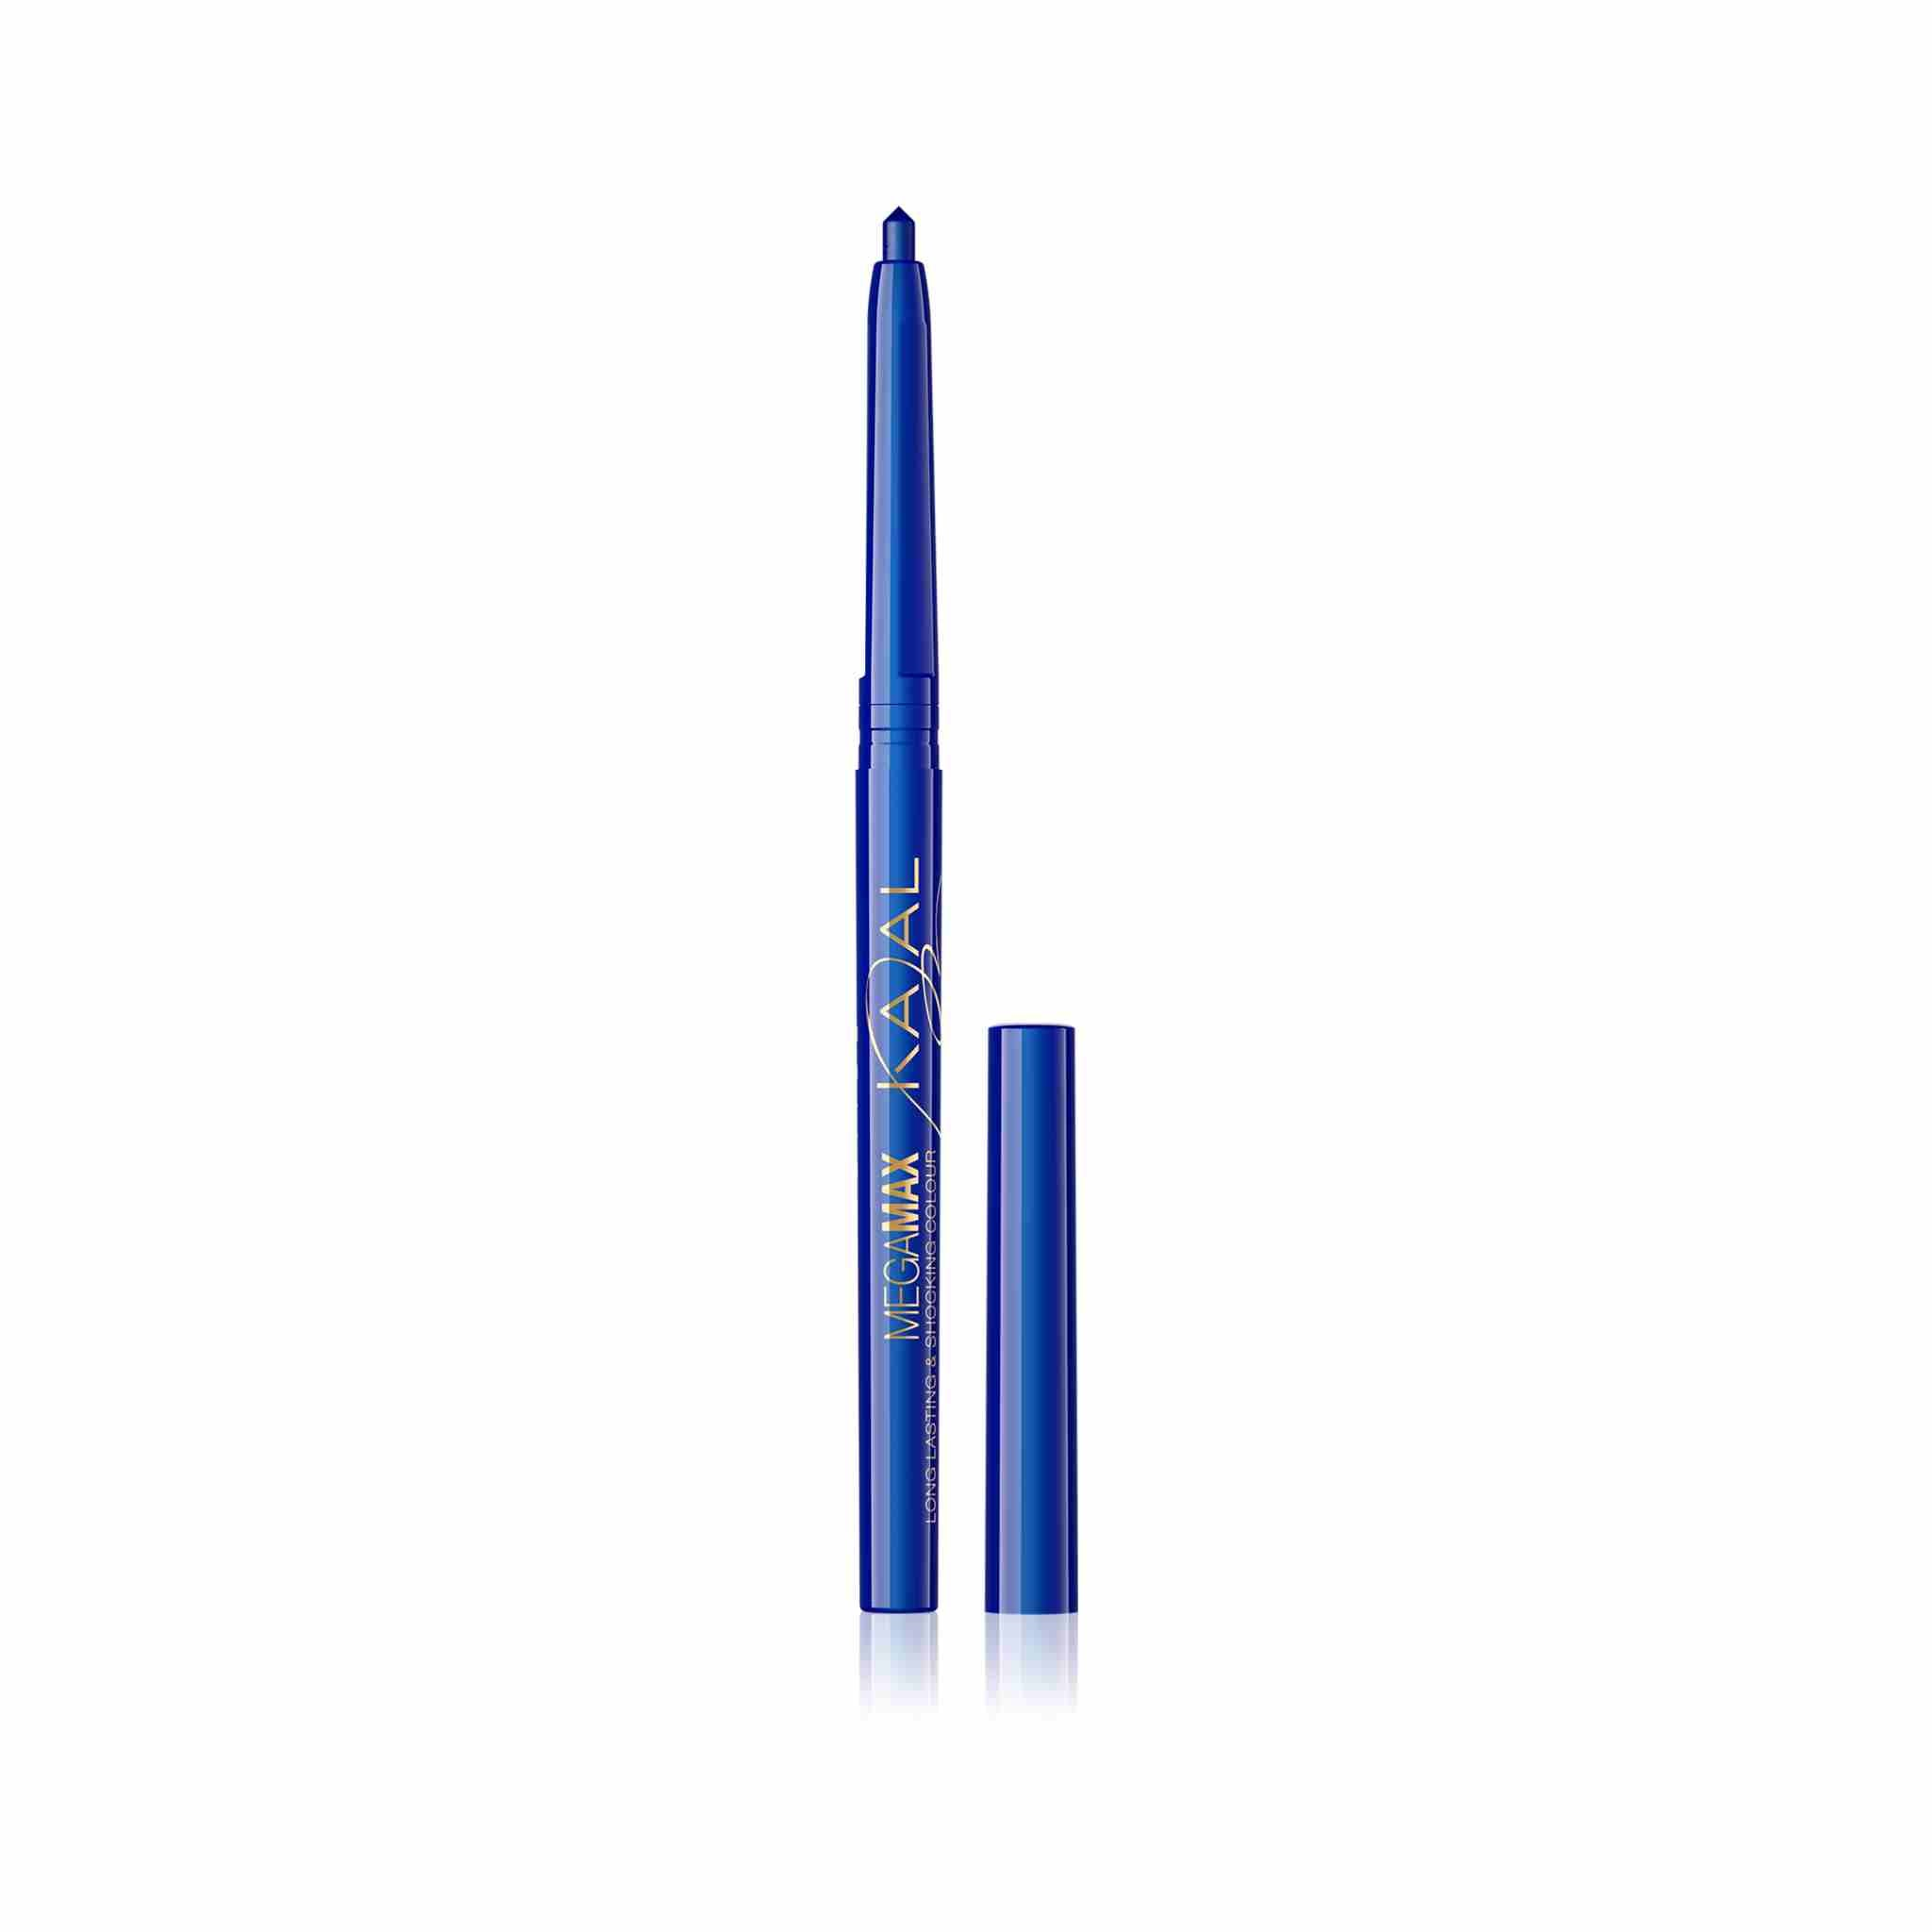 Kajal Mega Max Long Lasting Retractable Eyeliner Pencil